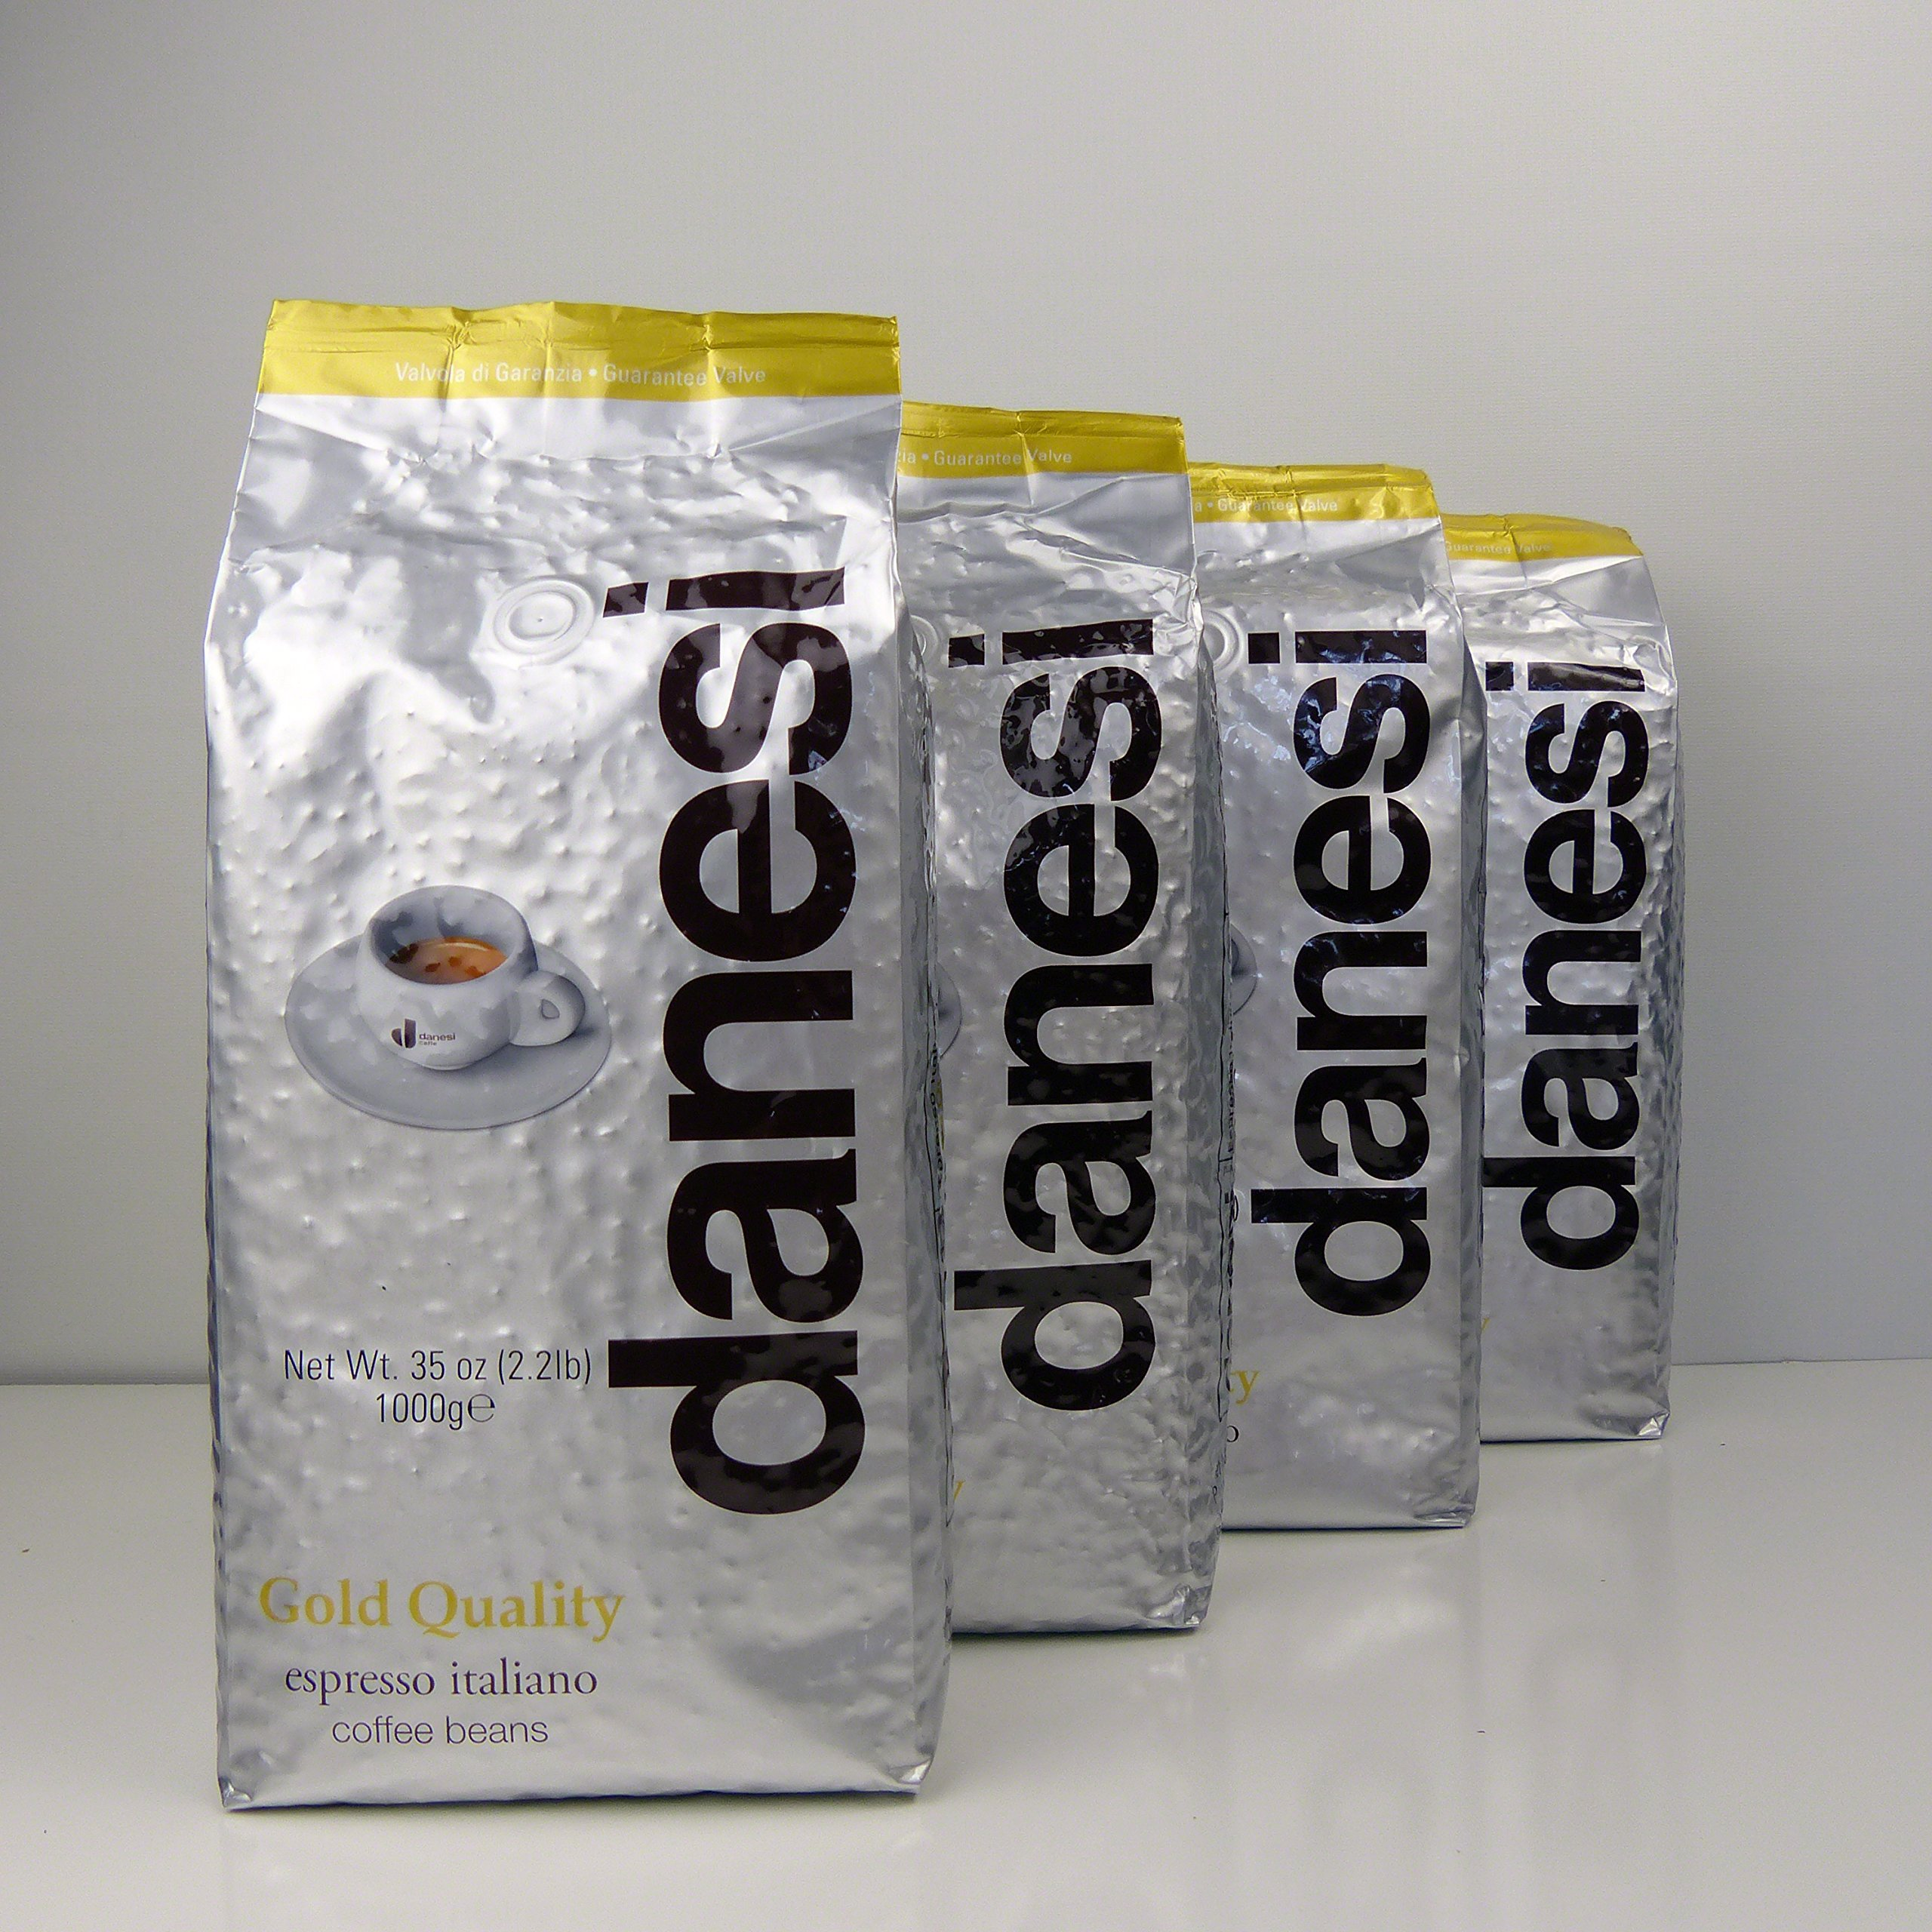 Danesi Gold Quality Beans 2.2 lbs bag Espresso Coffee Beans from Italy (4 x 2.2 lbs)